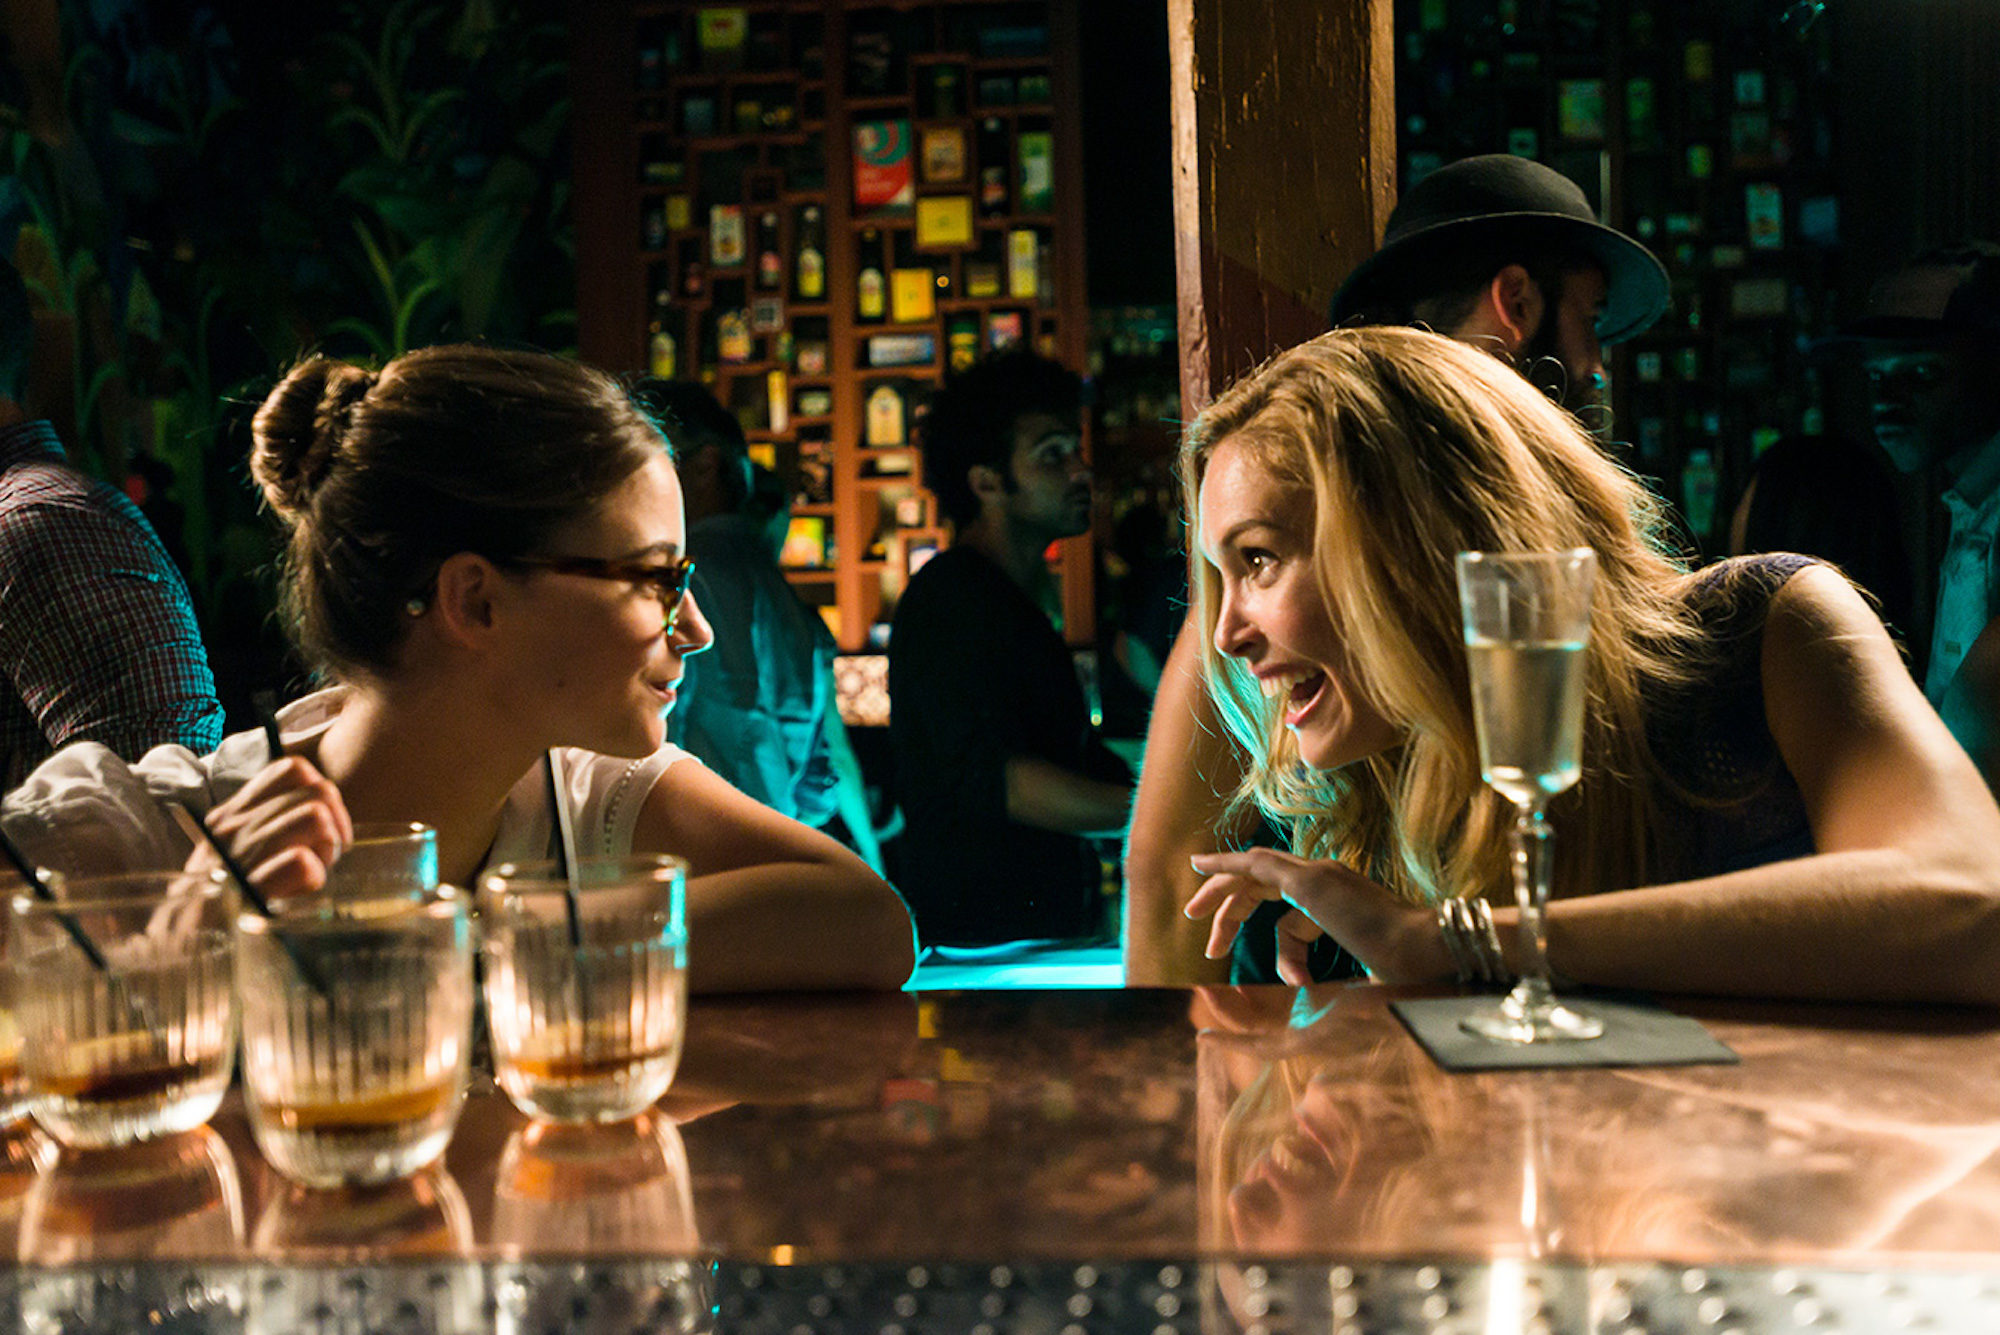 A still from the film 'Blind Date' with two women having drinks at the counter of a bar and chatting.